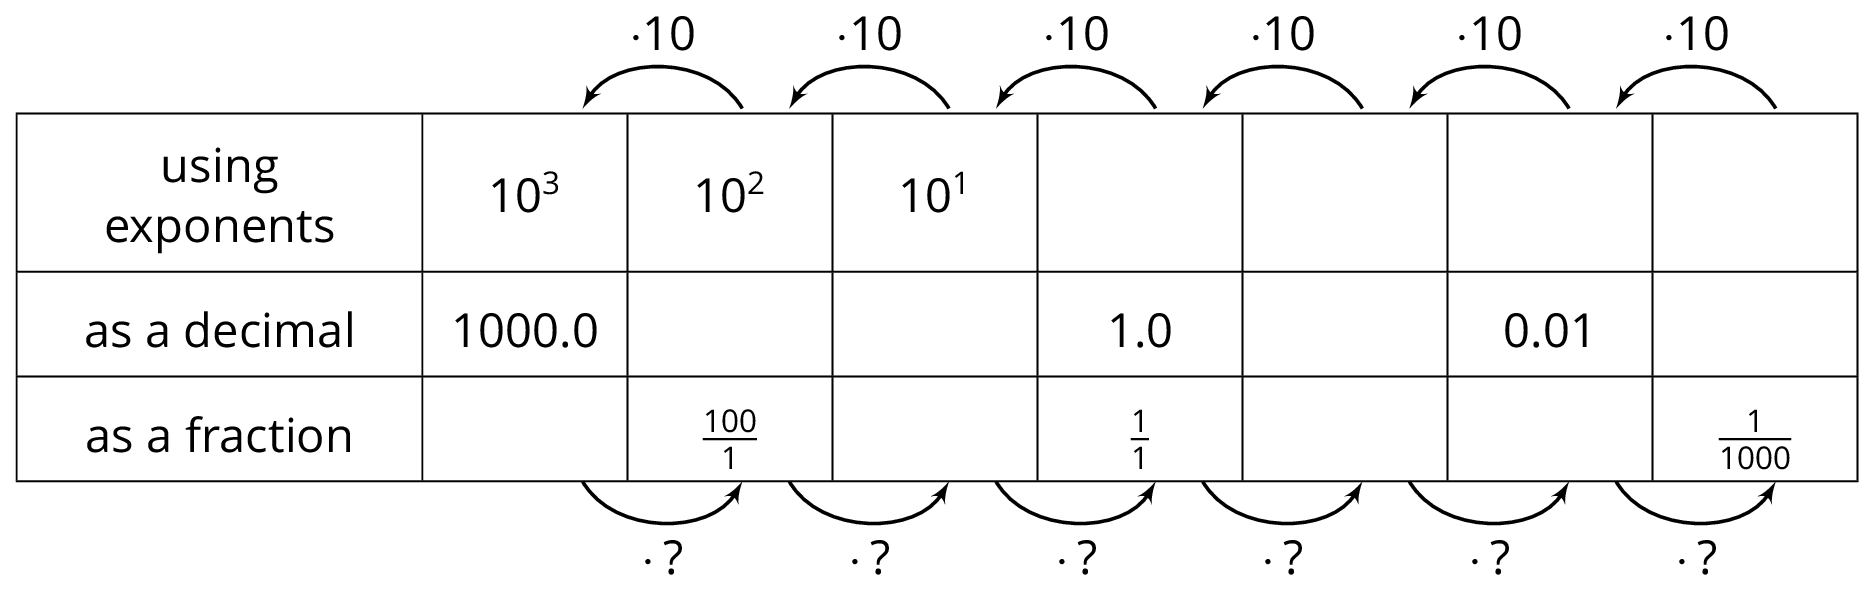 "An 8 column table with 3 rows of data. The first column contains a row header for each row. The data are as follows. Row 1: using exponents, 10 cubed; 10 squared; 10 to the first power; blank; blank; blank; blank.  Row 2: as a decimal, 1000 point 0; blank; blank; 1 point 0; blank, 0 point 0 1; blank.  Row 3: as a fraction, blank, the fraction 100 over 1; blank; the fraction 1 over 1; blank; blank; the fraction 1 over 1000. Above the table are arrows pointing from the 8th column to the 7th, the 7th column to the 6th, and so on. These arrows are labeled ""mulitply by 10"". Below the table are arrows pointing from the 2nd column to the 3rd, the 3rd column to the 4th, and so on. These arrows are labeled ""mulitply by question mark""."